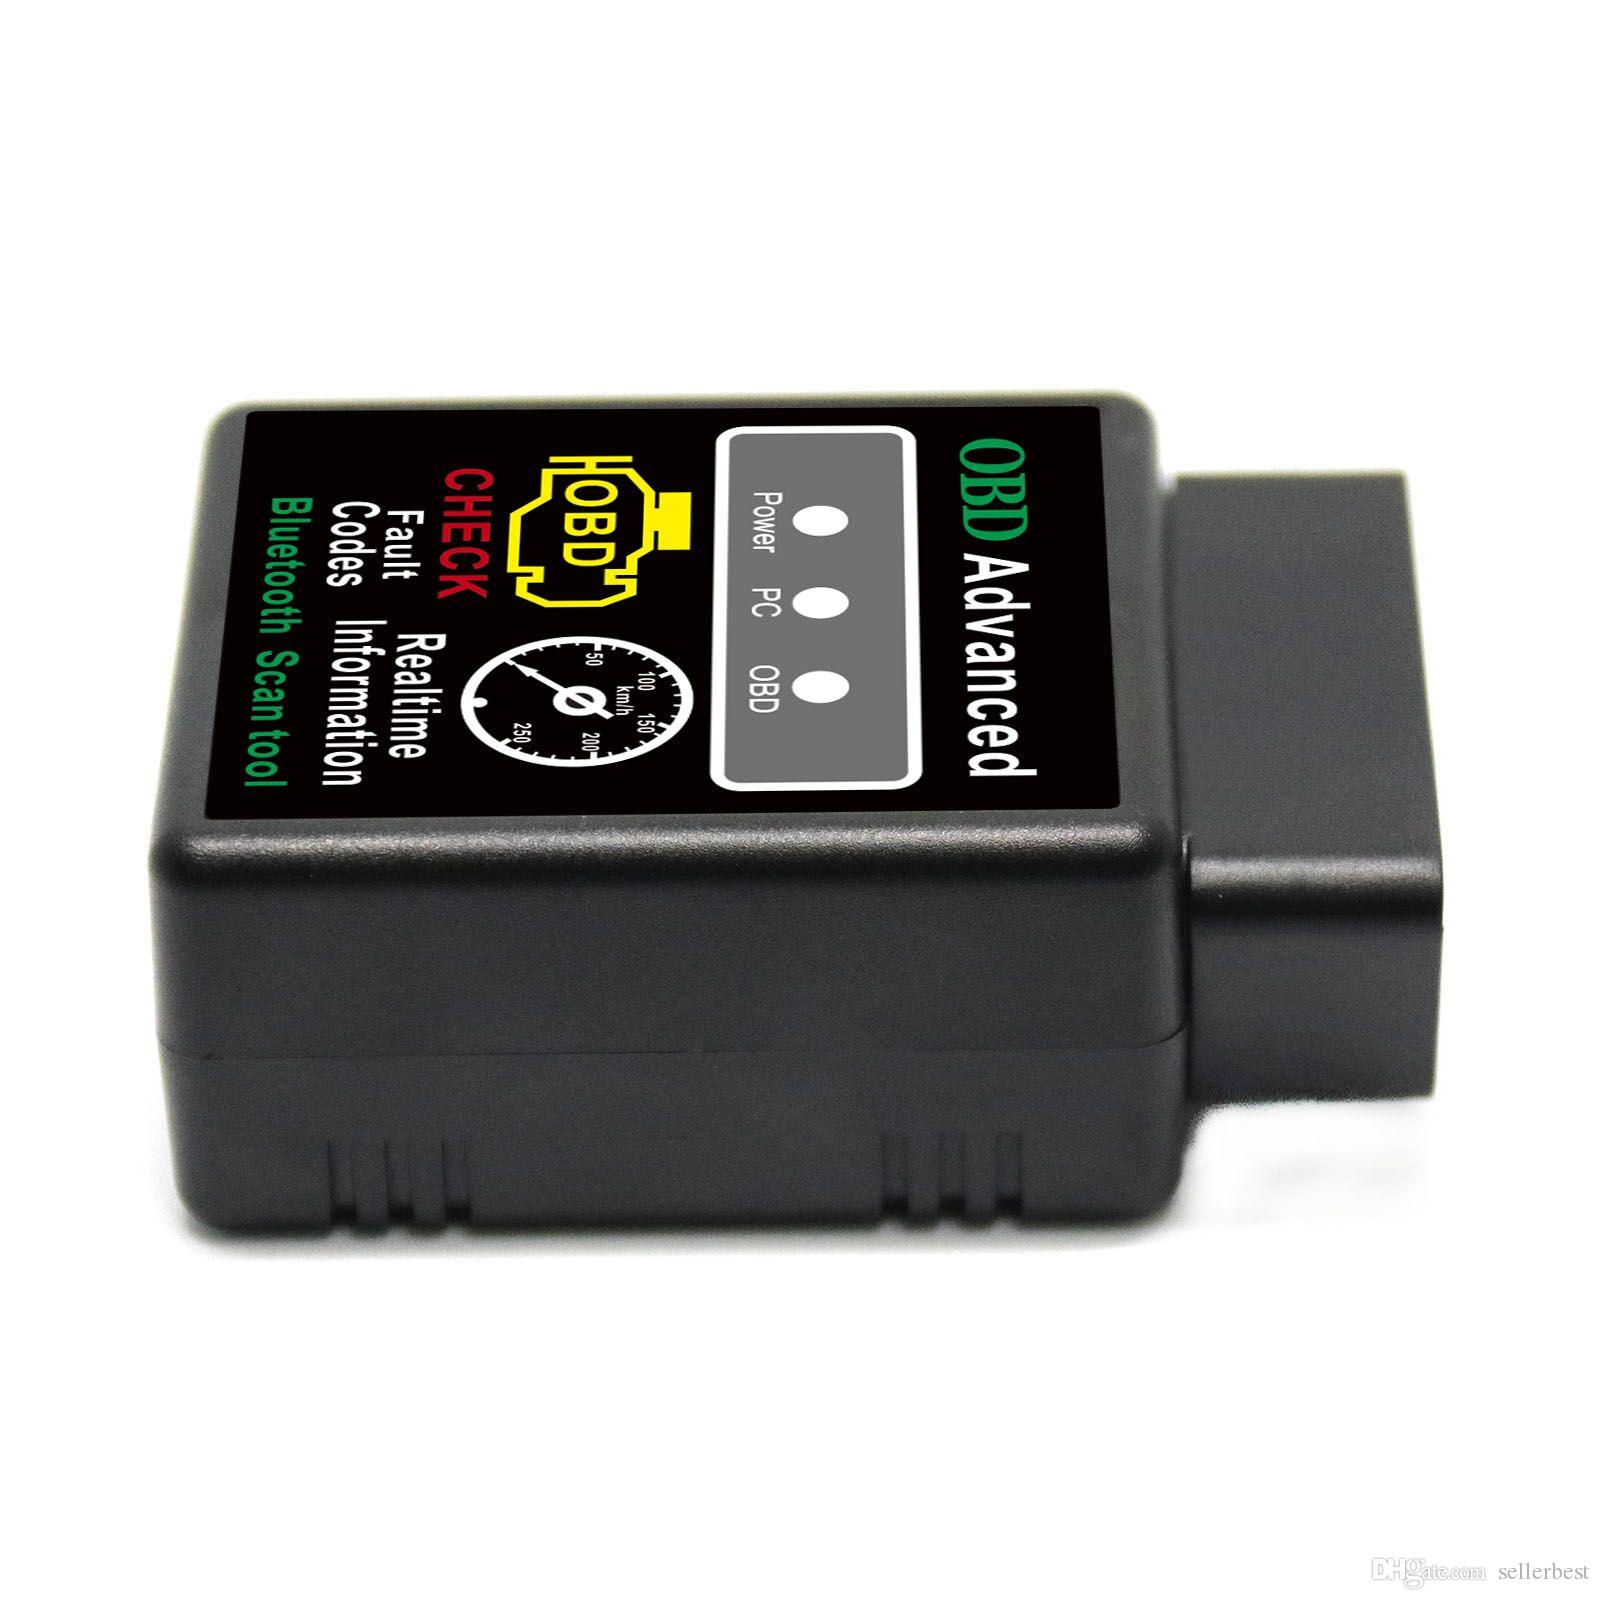 VGATE Scan Качество инструмента A + V1.5 Версия 1.5 Super OBD Scan Mini ELM327 Bluetooth ELM 327 OBDII OBD2 Auto Diagnostic Intercace